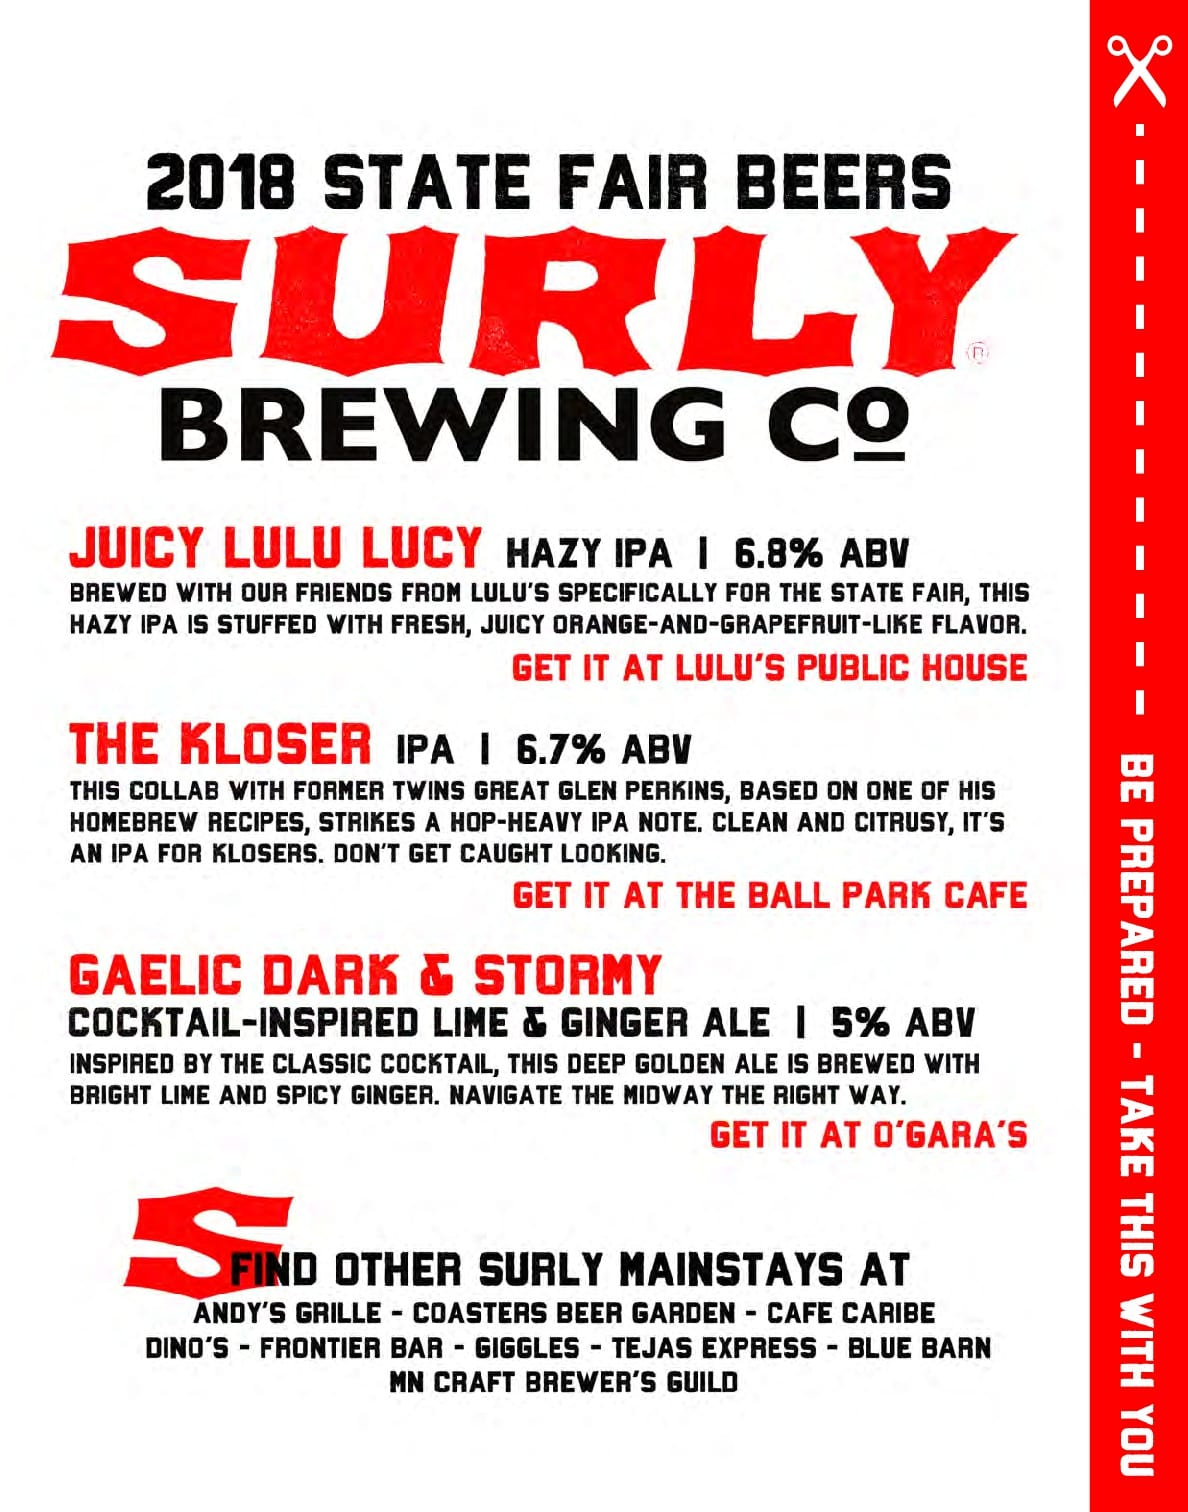 Circuit The Red Bars In Parallel Don39t Lower Because Three Beers One Fair Surly Brewing Co Coming Soon Guide To State